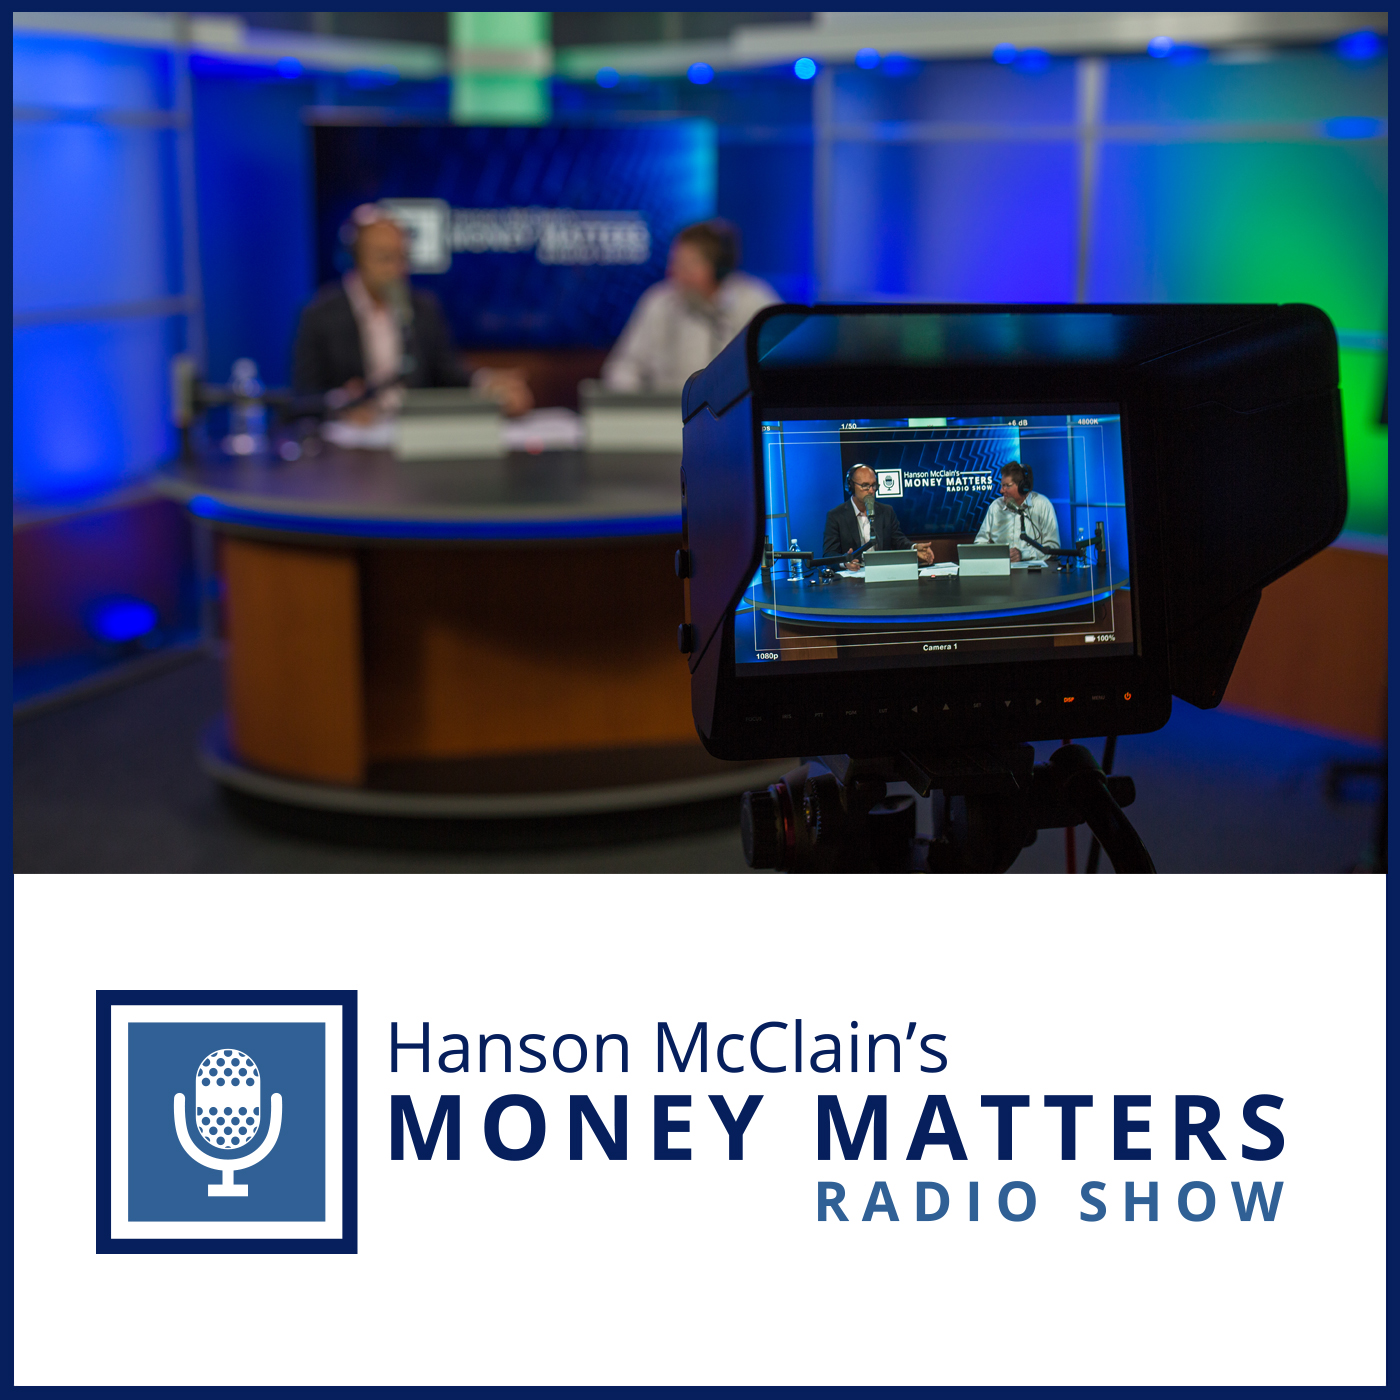 Hanson McClain's Money Matters (video)